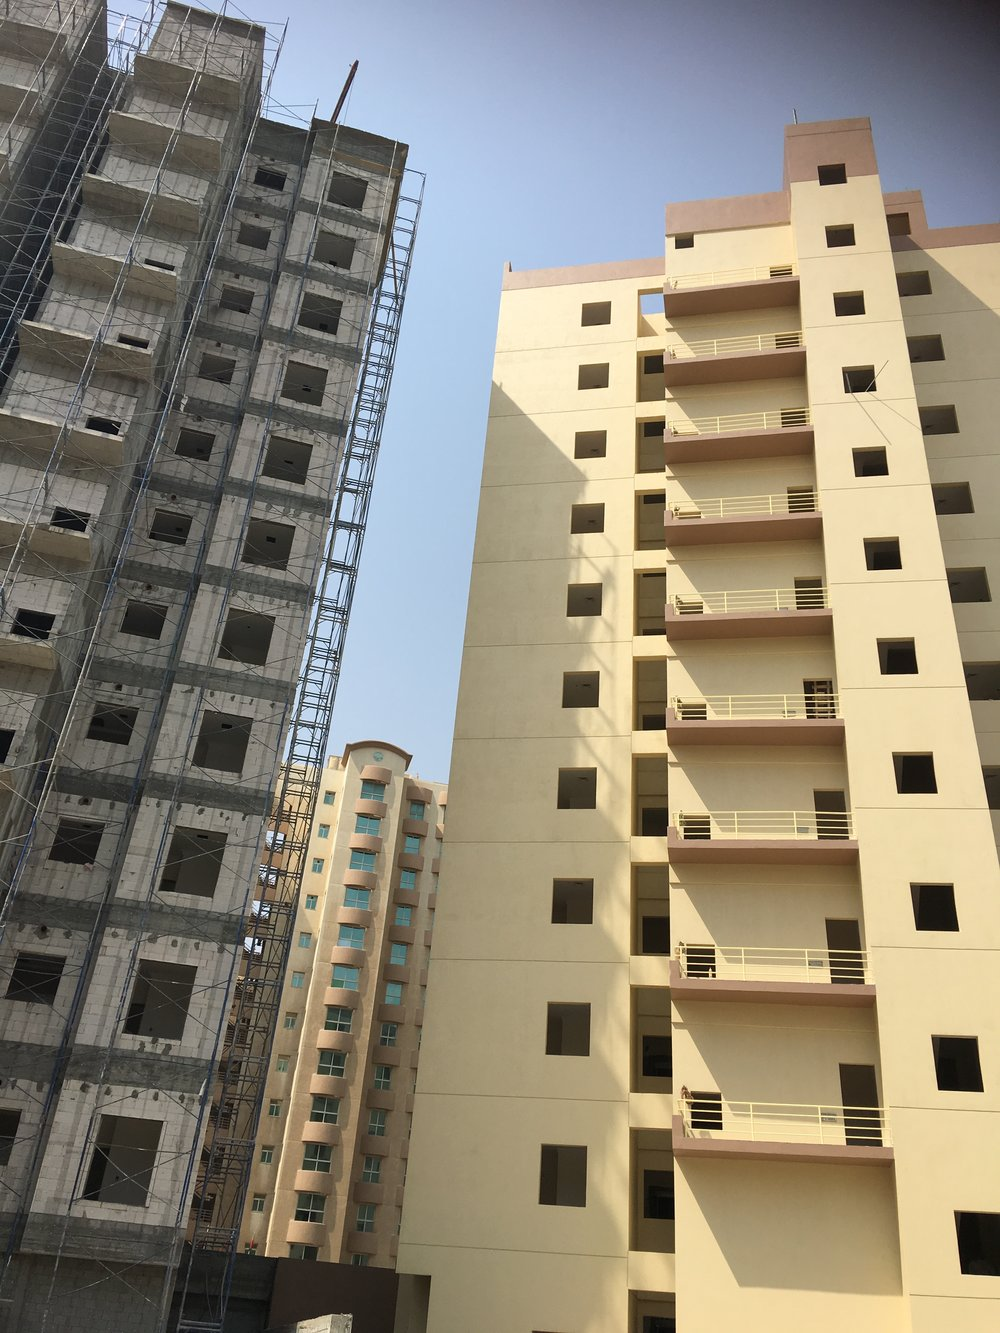 salmiya 20 days of difference with neighbor building.jpeg